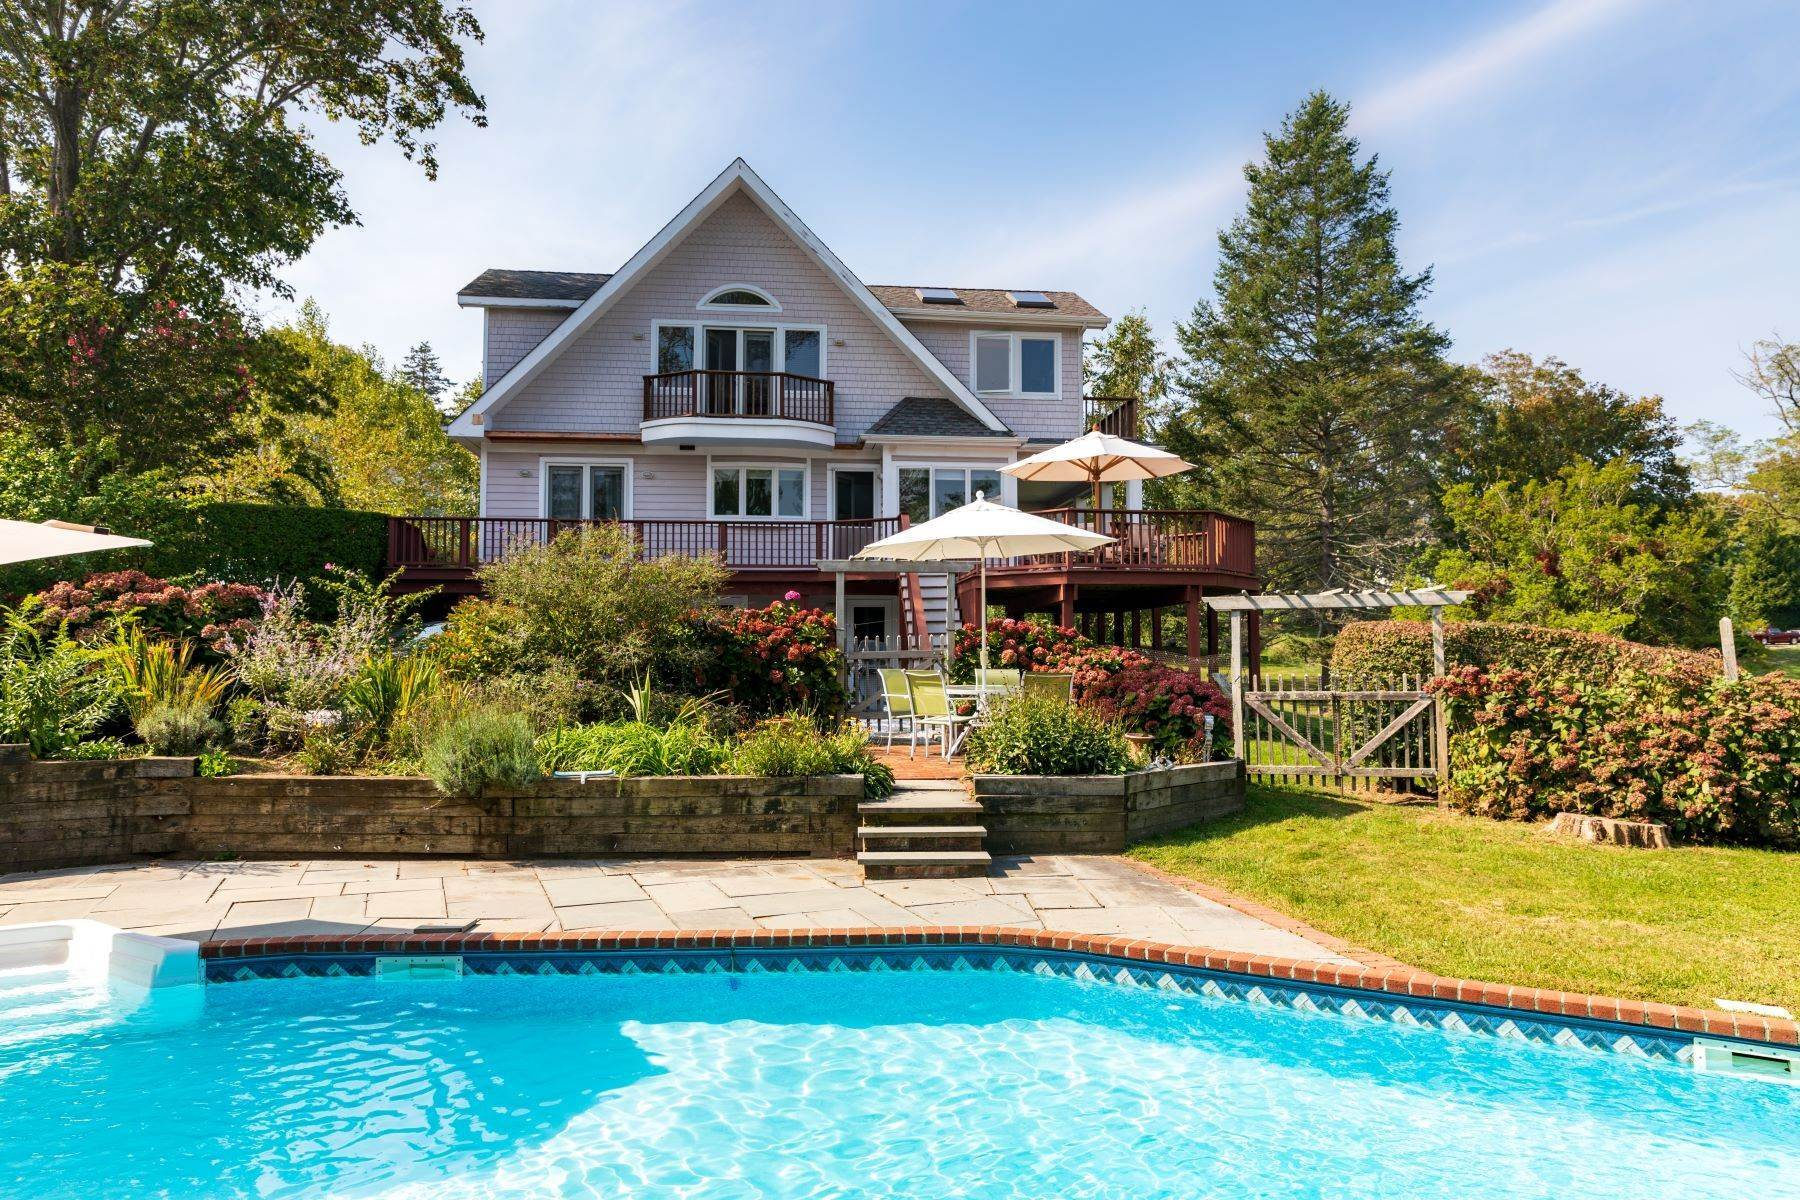 Single Family Homes for Sale at Shelter Island Heights Water Views 10 Grand Avenue Shelter Island, New York 11965 United States